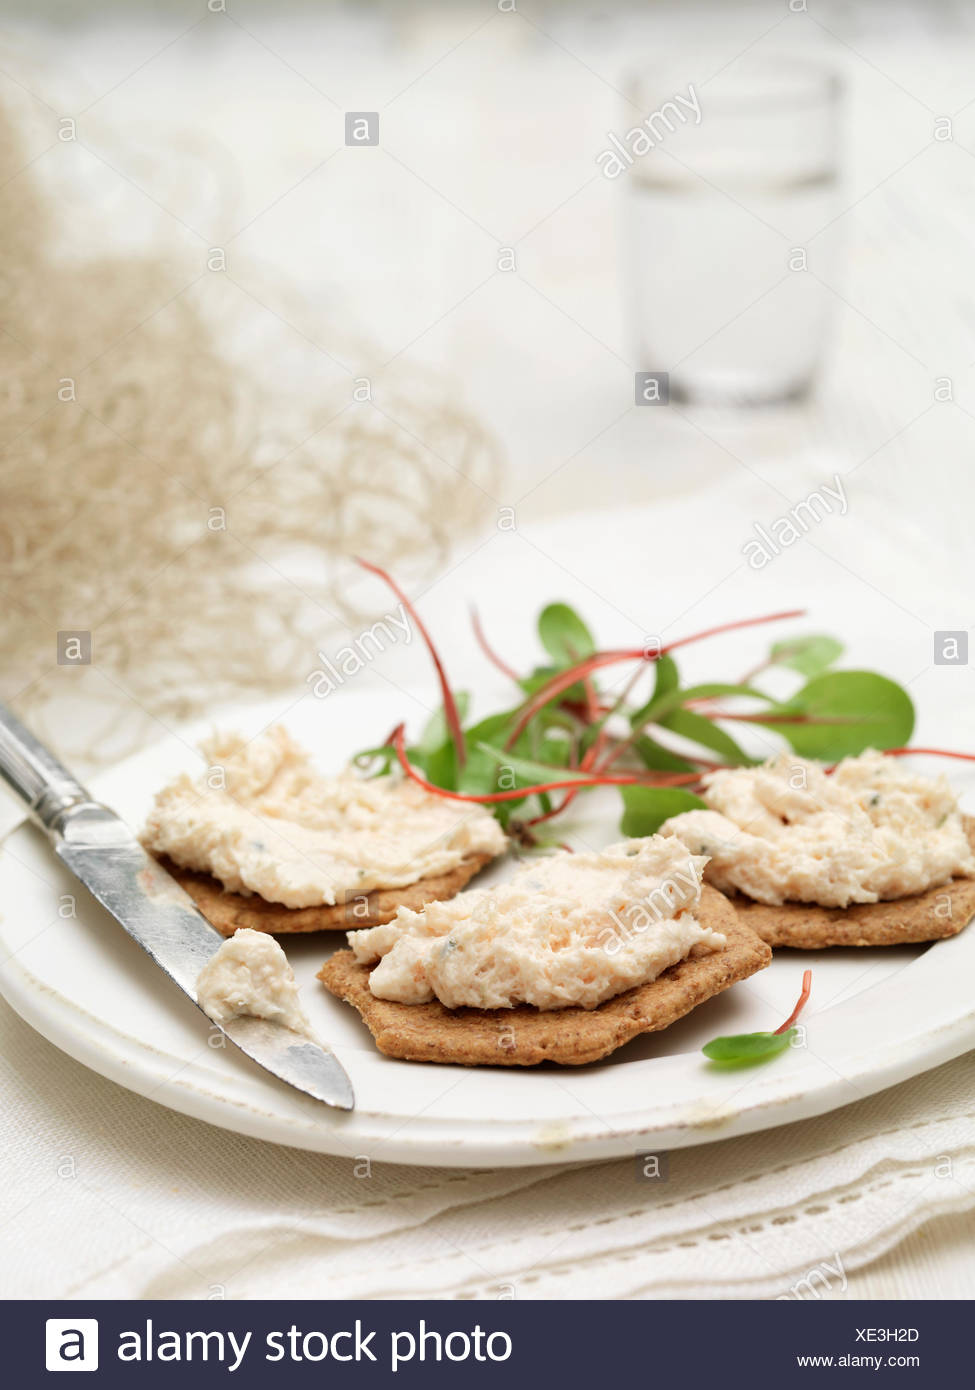 Snack of Scottish poached salmon terrines on savory biscuits chard salad garnish - Stock Image